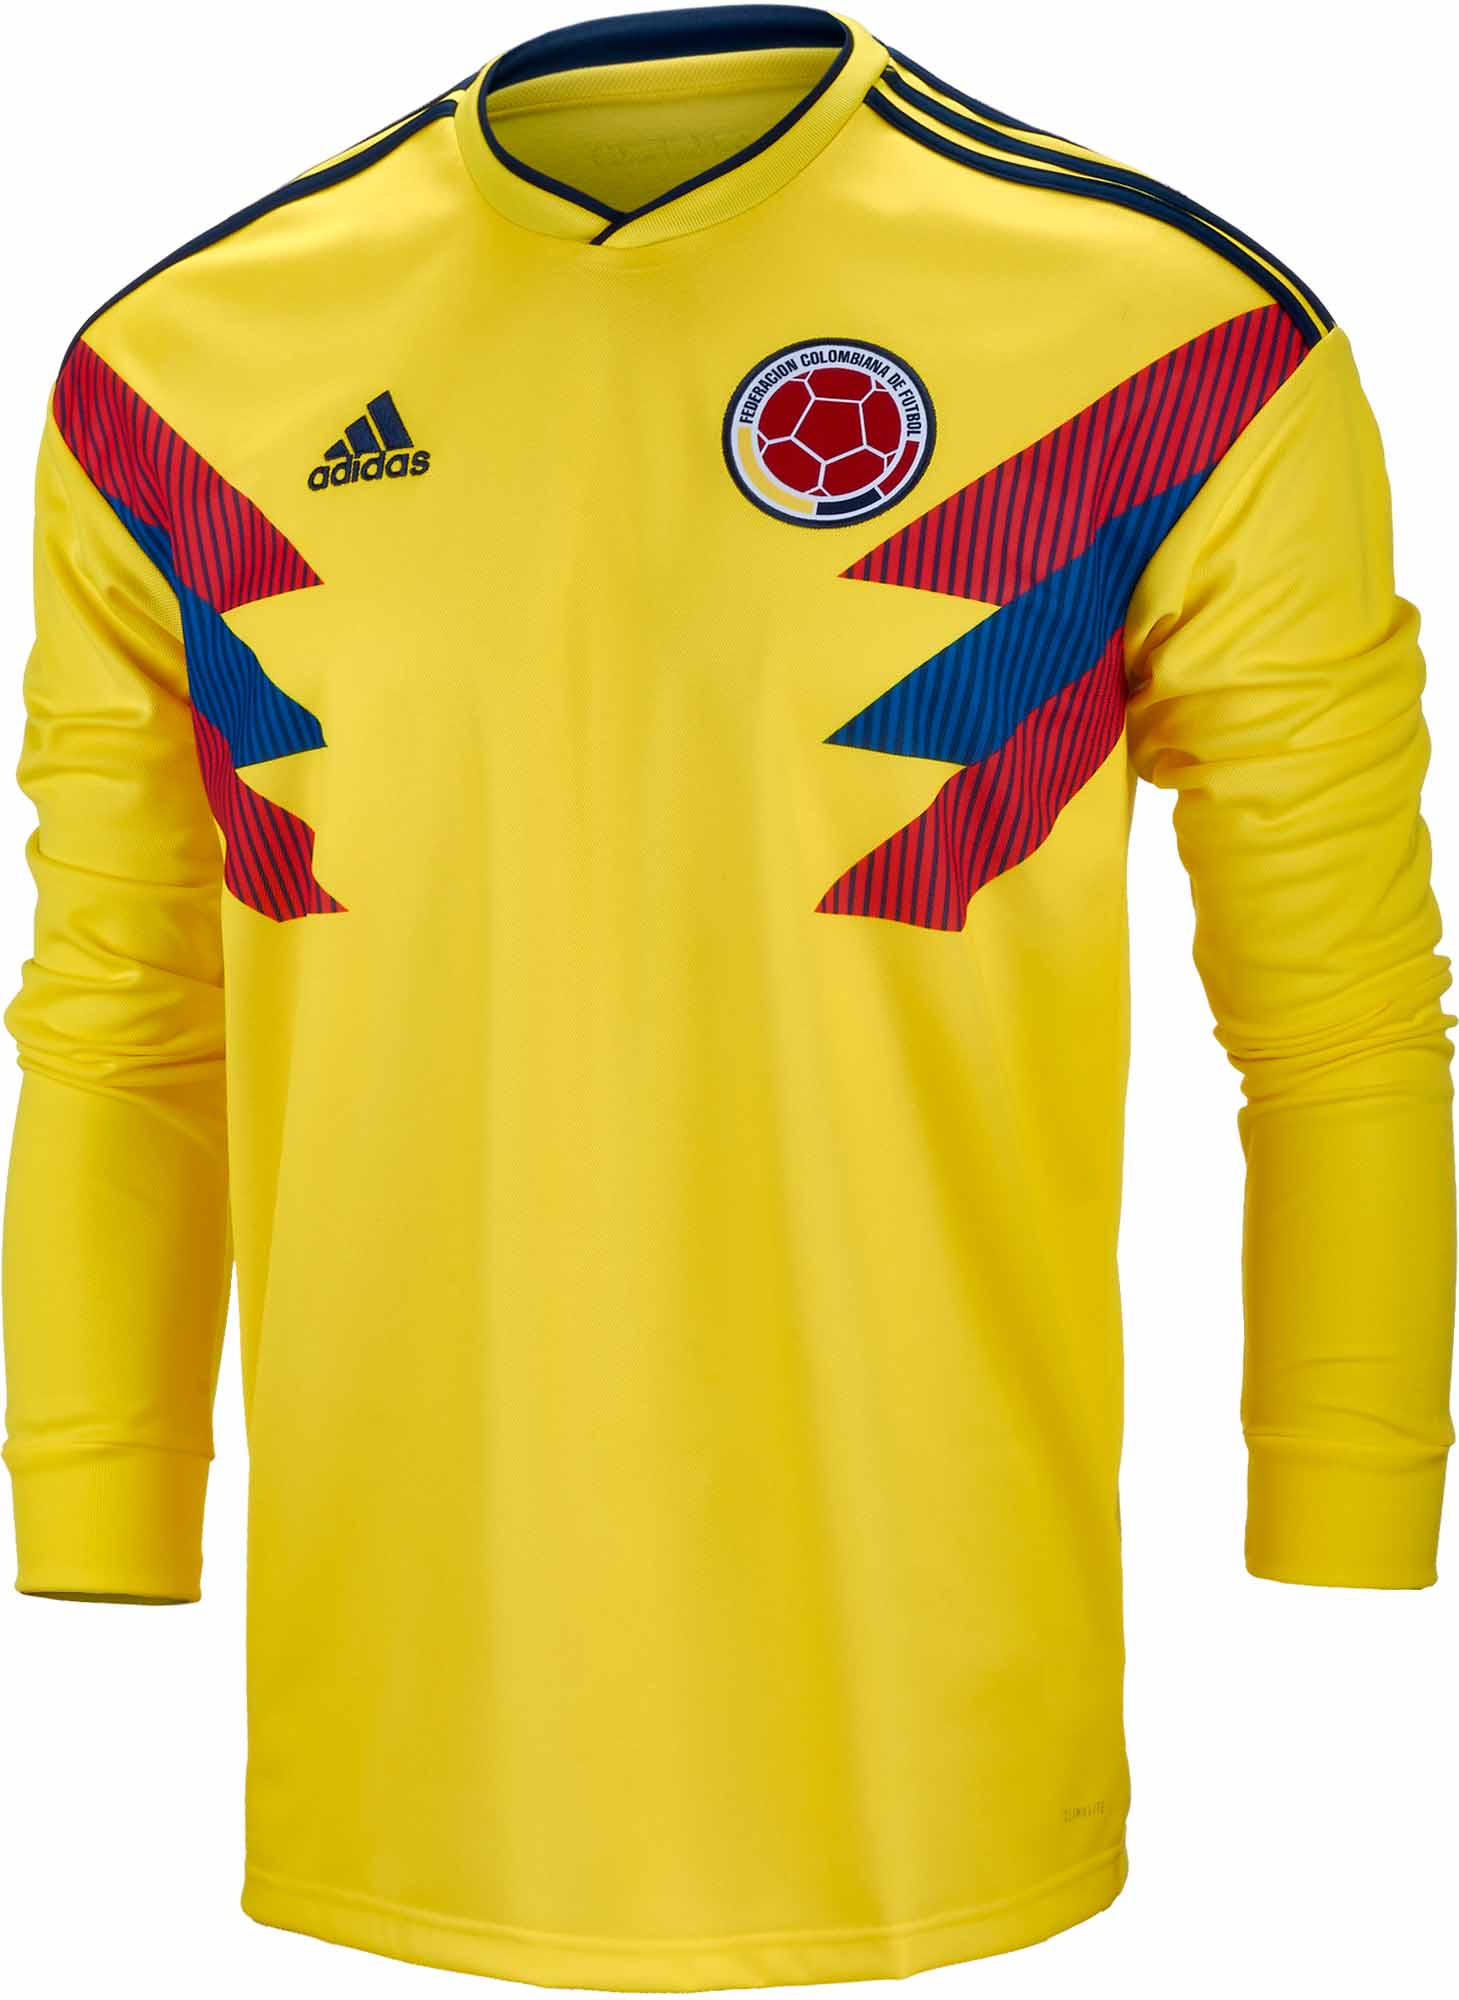 5796e2757 2018 19 adidas Colombia L S Home Jersey - Soccer Master